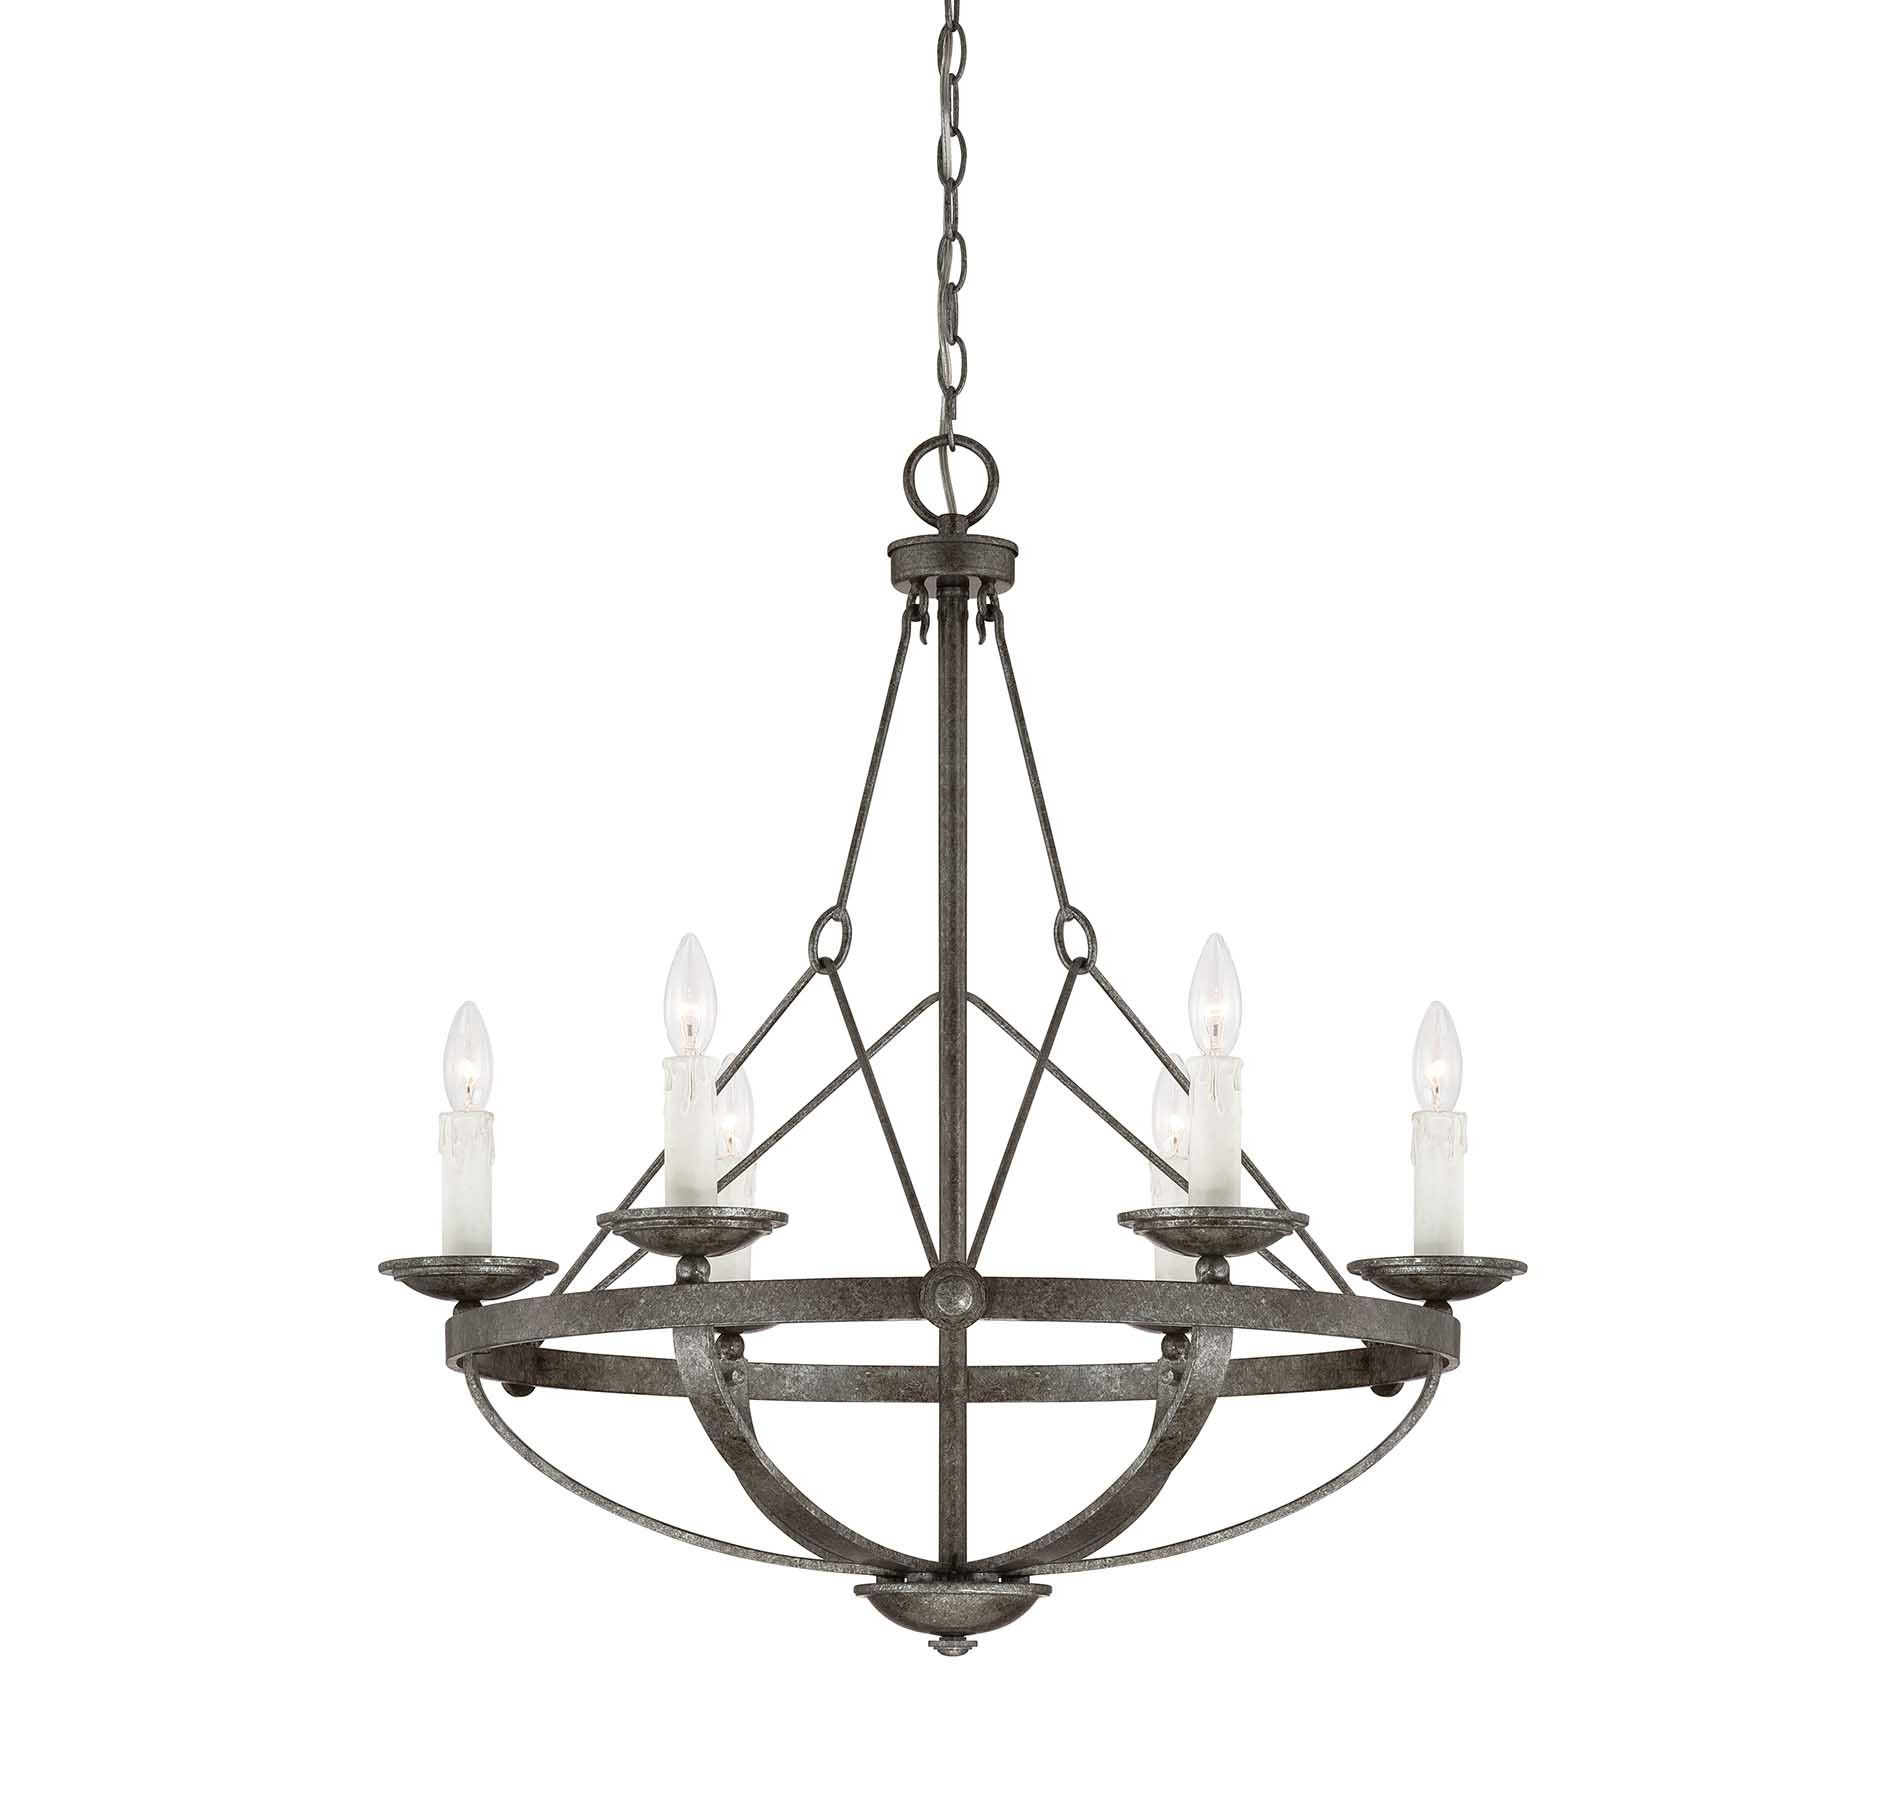 From the Savoy House Epoque collection, this 6-light chandelier ...